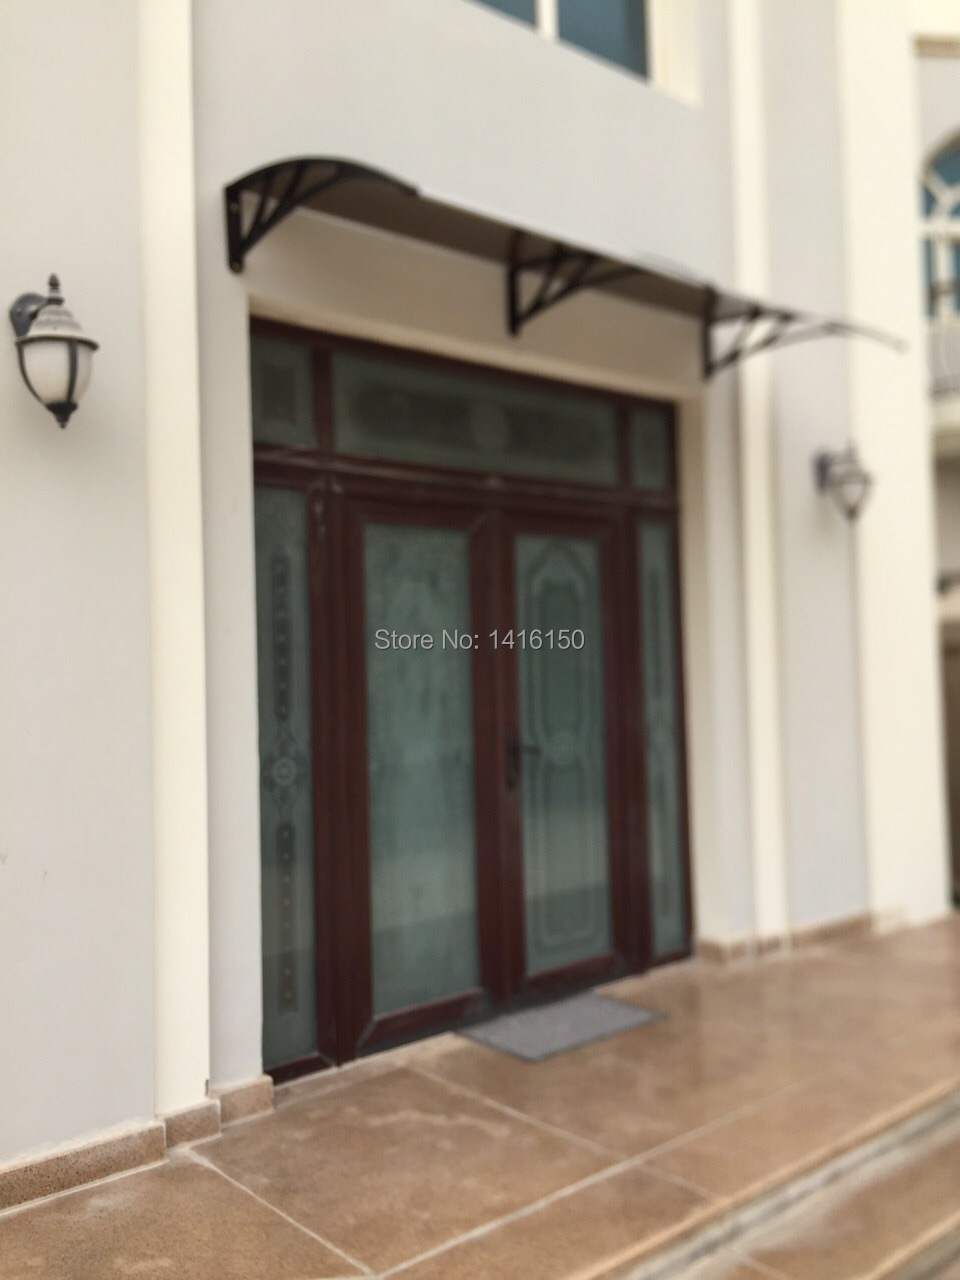 Ds100200 A 100x200cm Including Shipping Costs Aluminum Entrance Door Canopy Door Canopies Aluminum Door Brasscanopy 450 Aliexpress